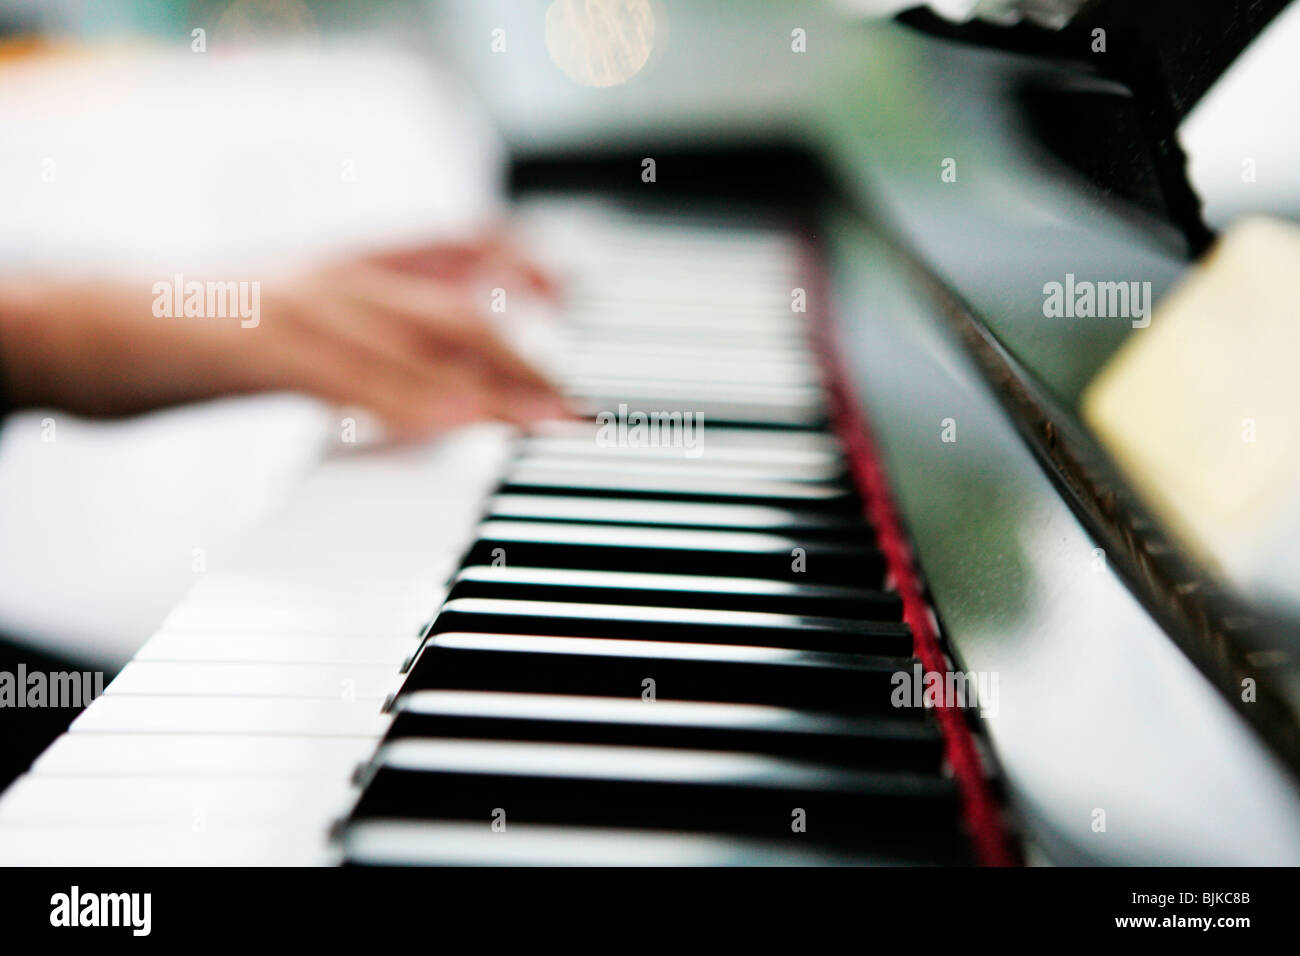 Hands on a piano keyboard - Stock Image